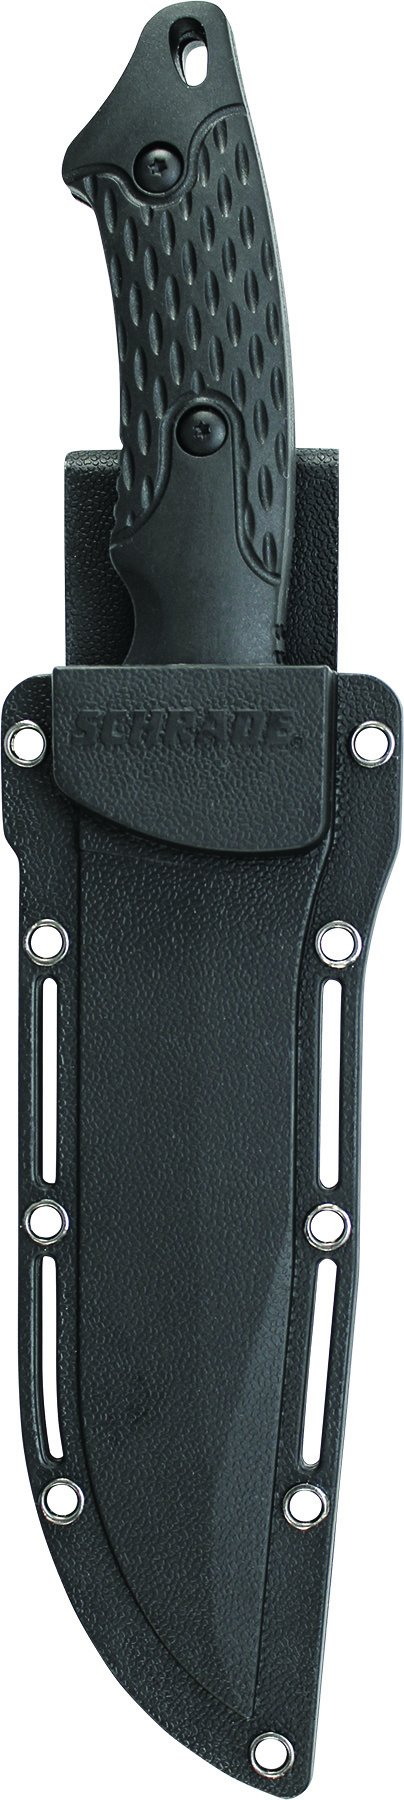 Schrade SCHF30 Full Tang Clip Point Fixed Blade Knife